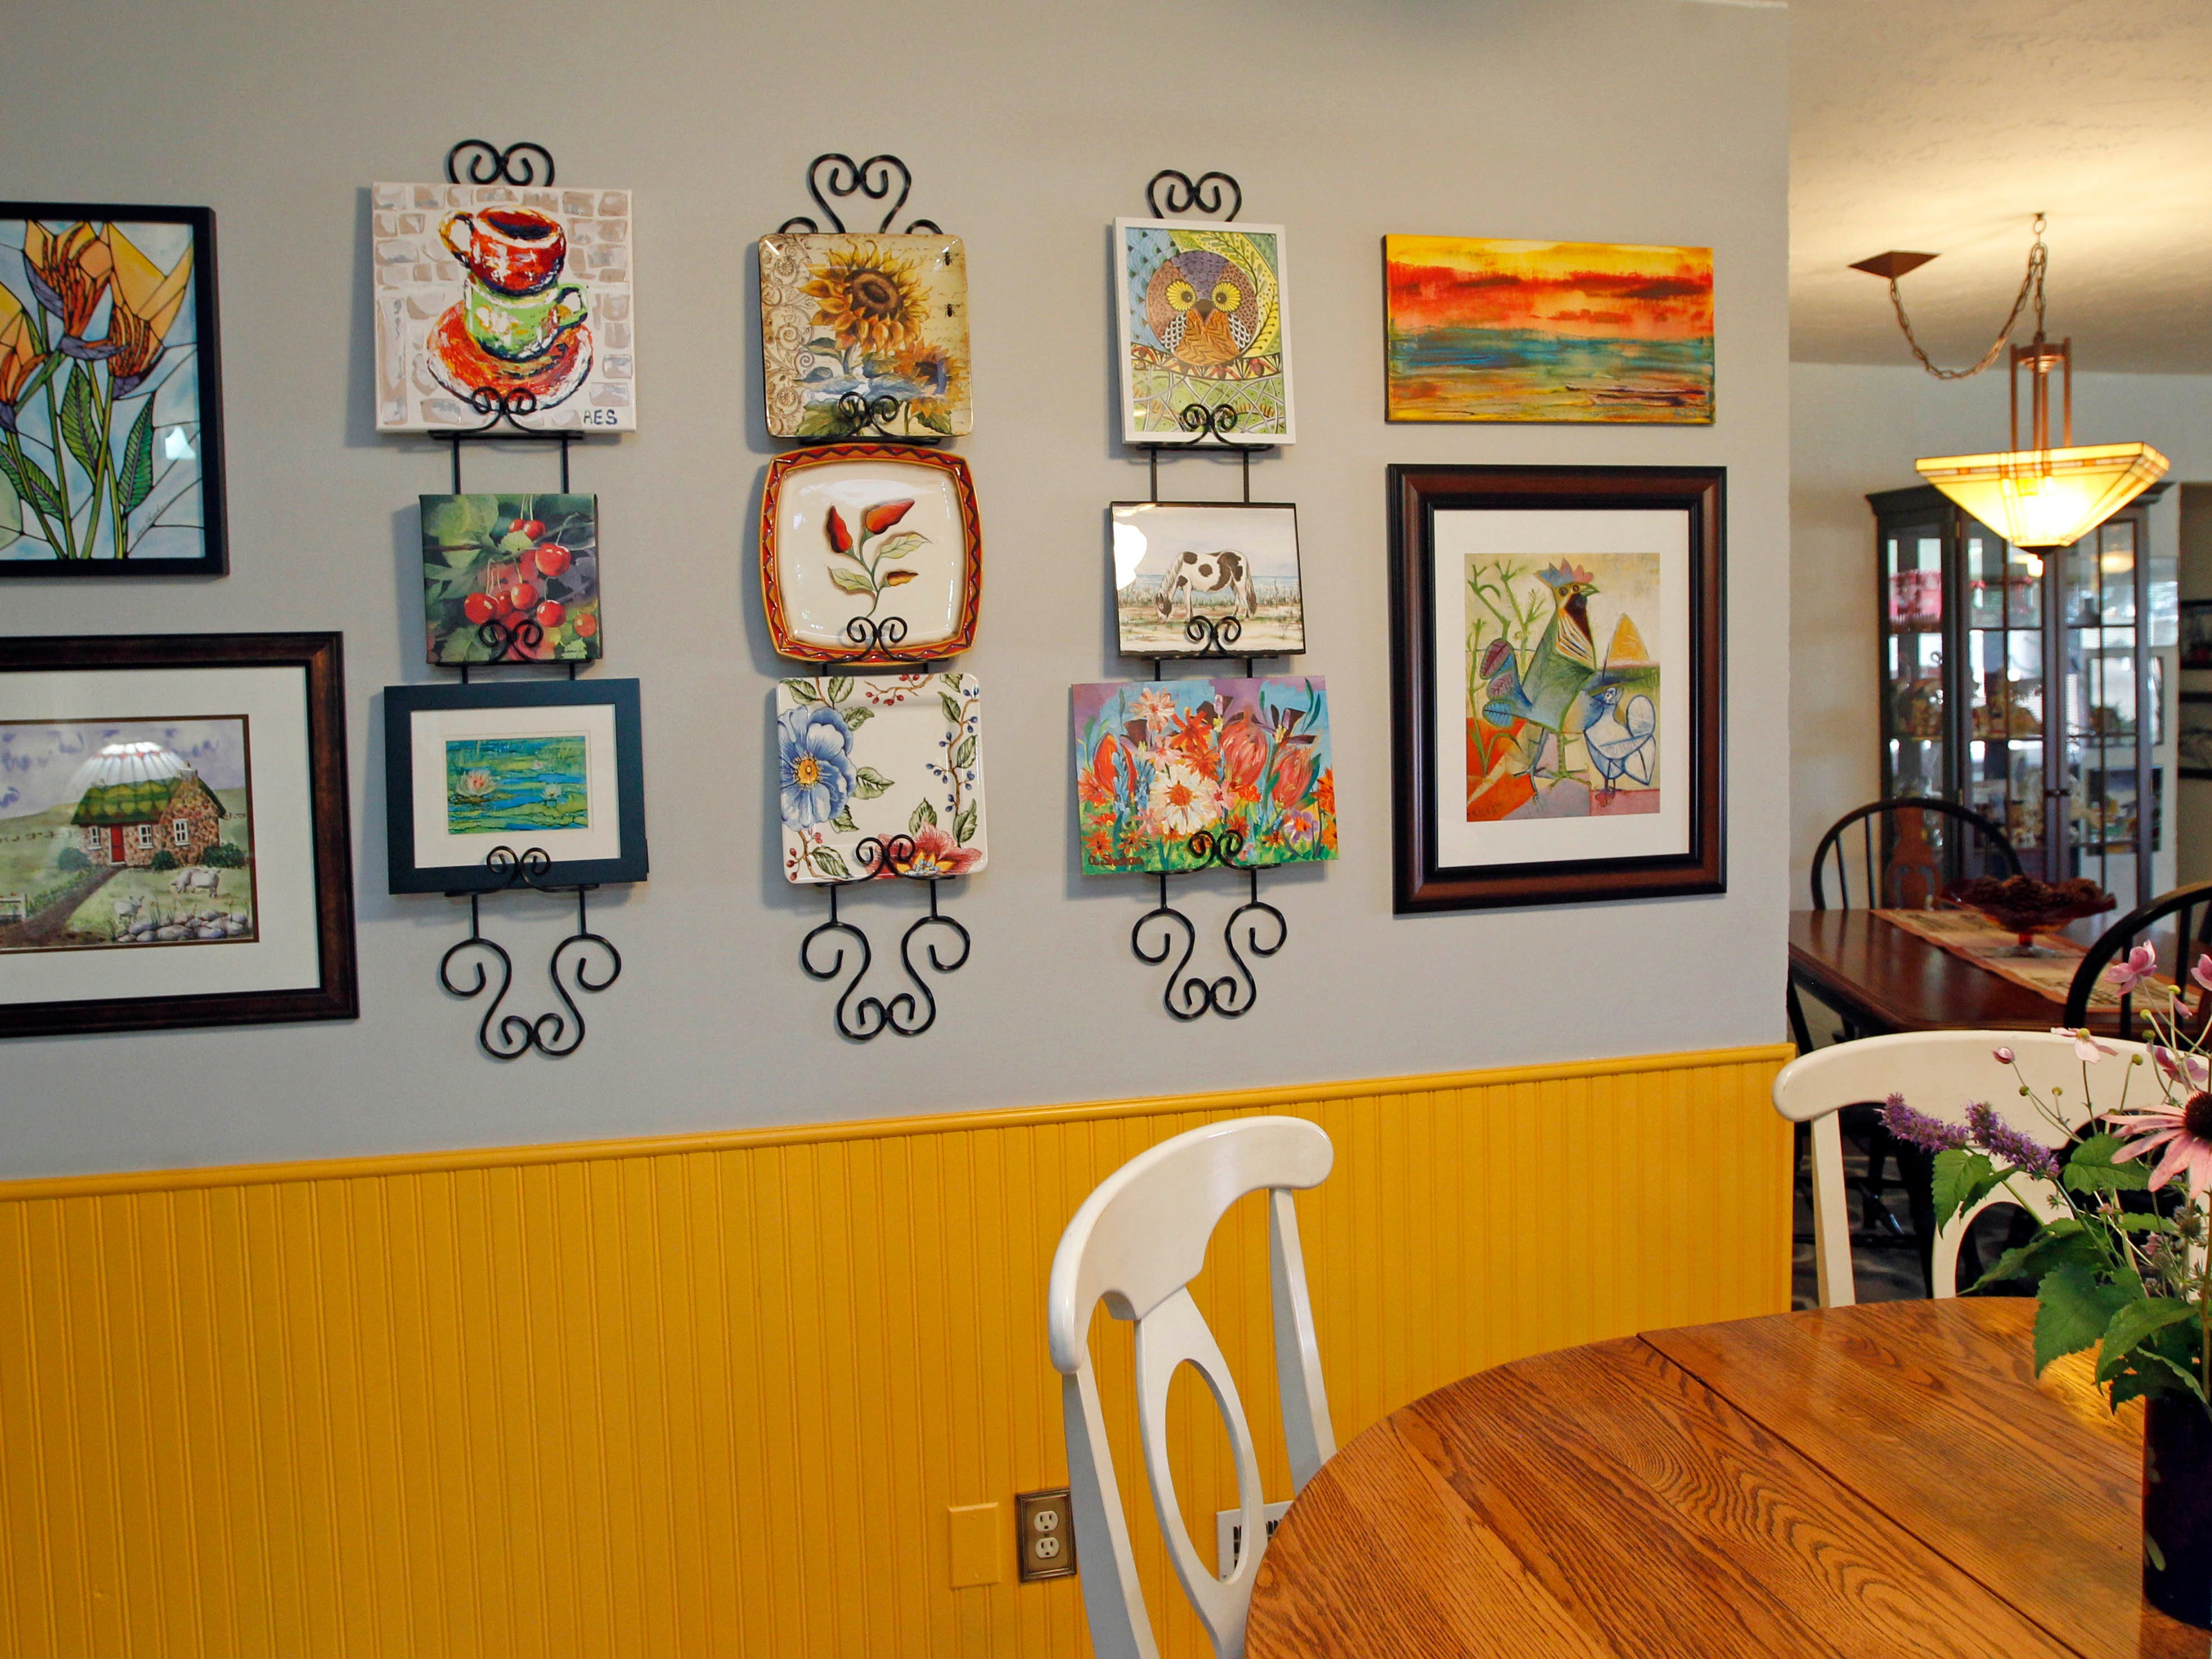 Artwork created by homeowner Ann Sheahan and those of other artists is displayed near the eating area of the kitchen.